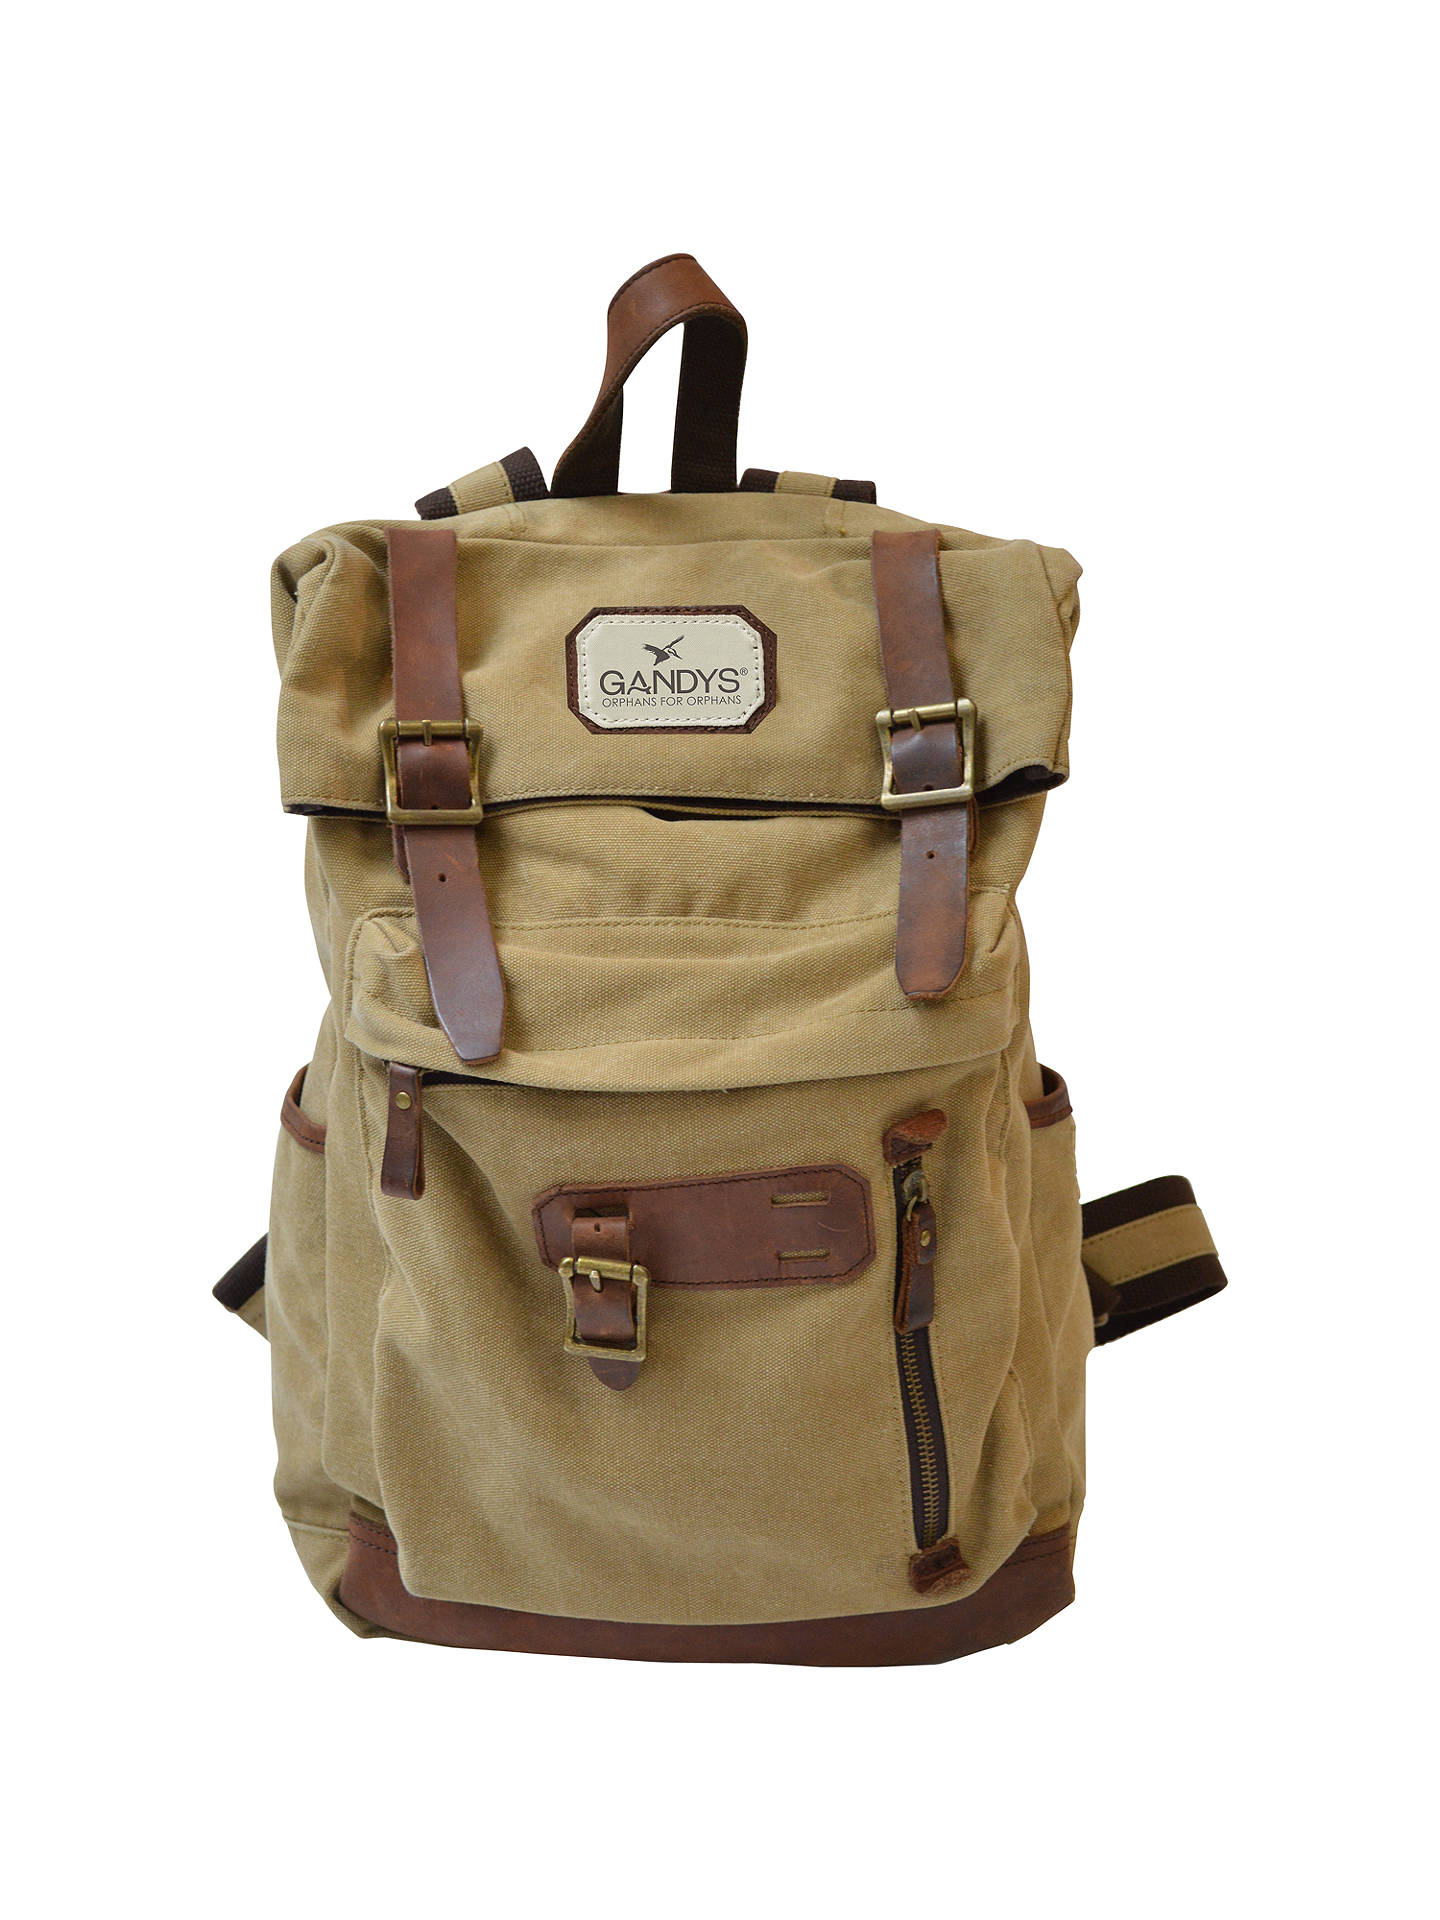 BuyGandys Bali Authentic Voyager Backpack, Beige Online at johnlewis.com ... 0db2f37f97